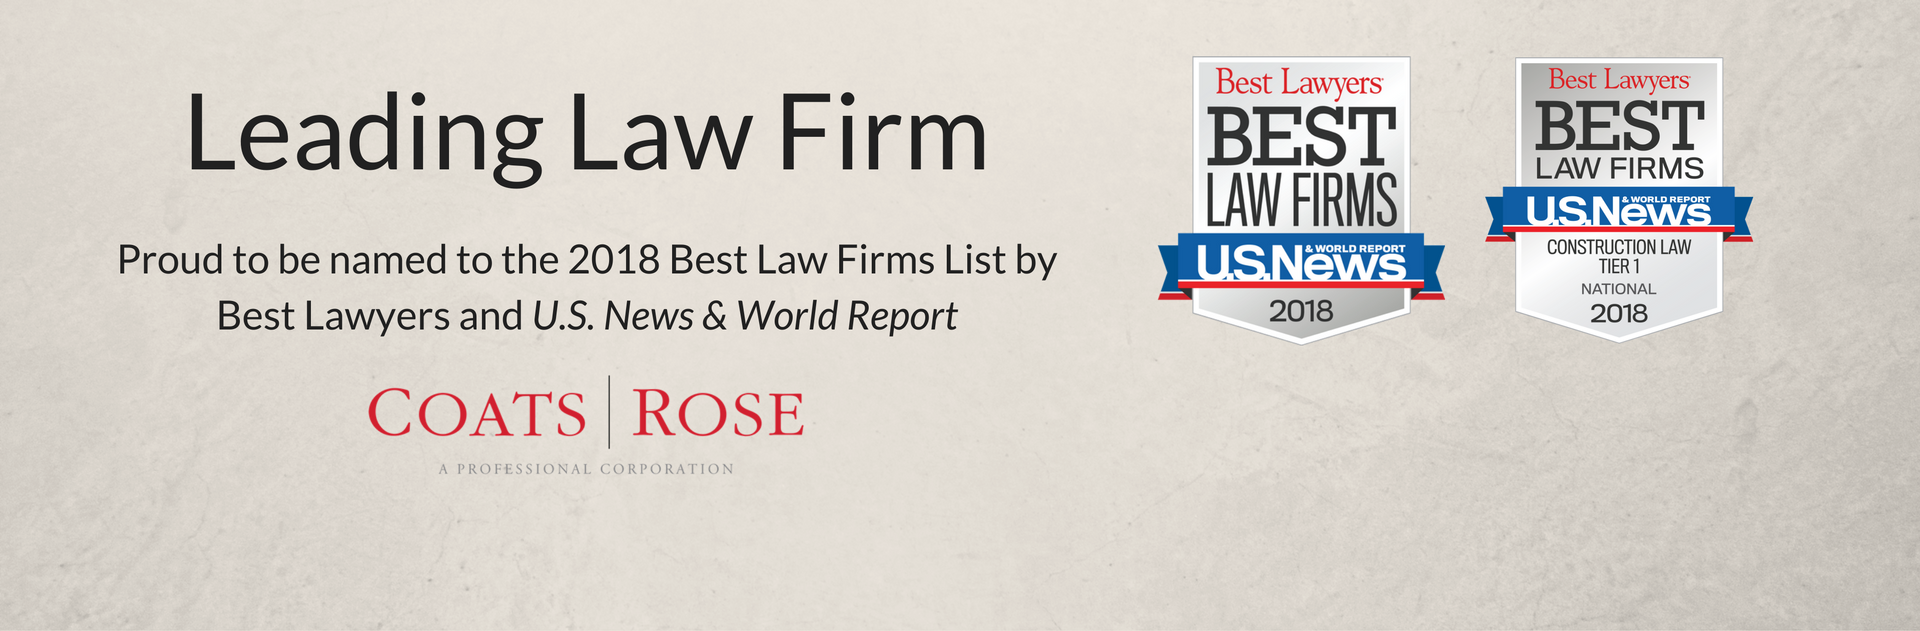 "Coats Rose Achieves National Tier 1 Rankings in the 2018 ""Best Law Firms"" Survey by U.S. News & World Report and Best Lawyers®"